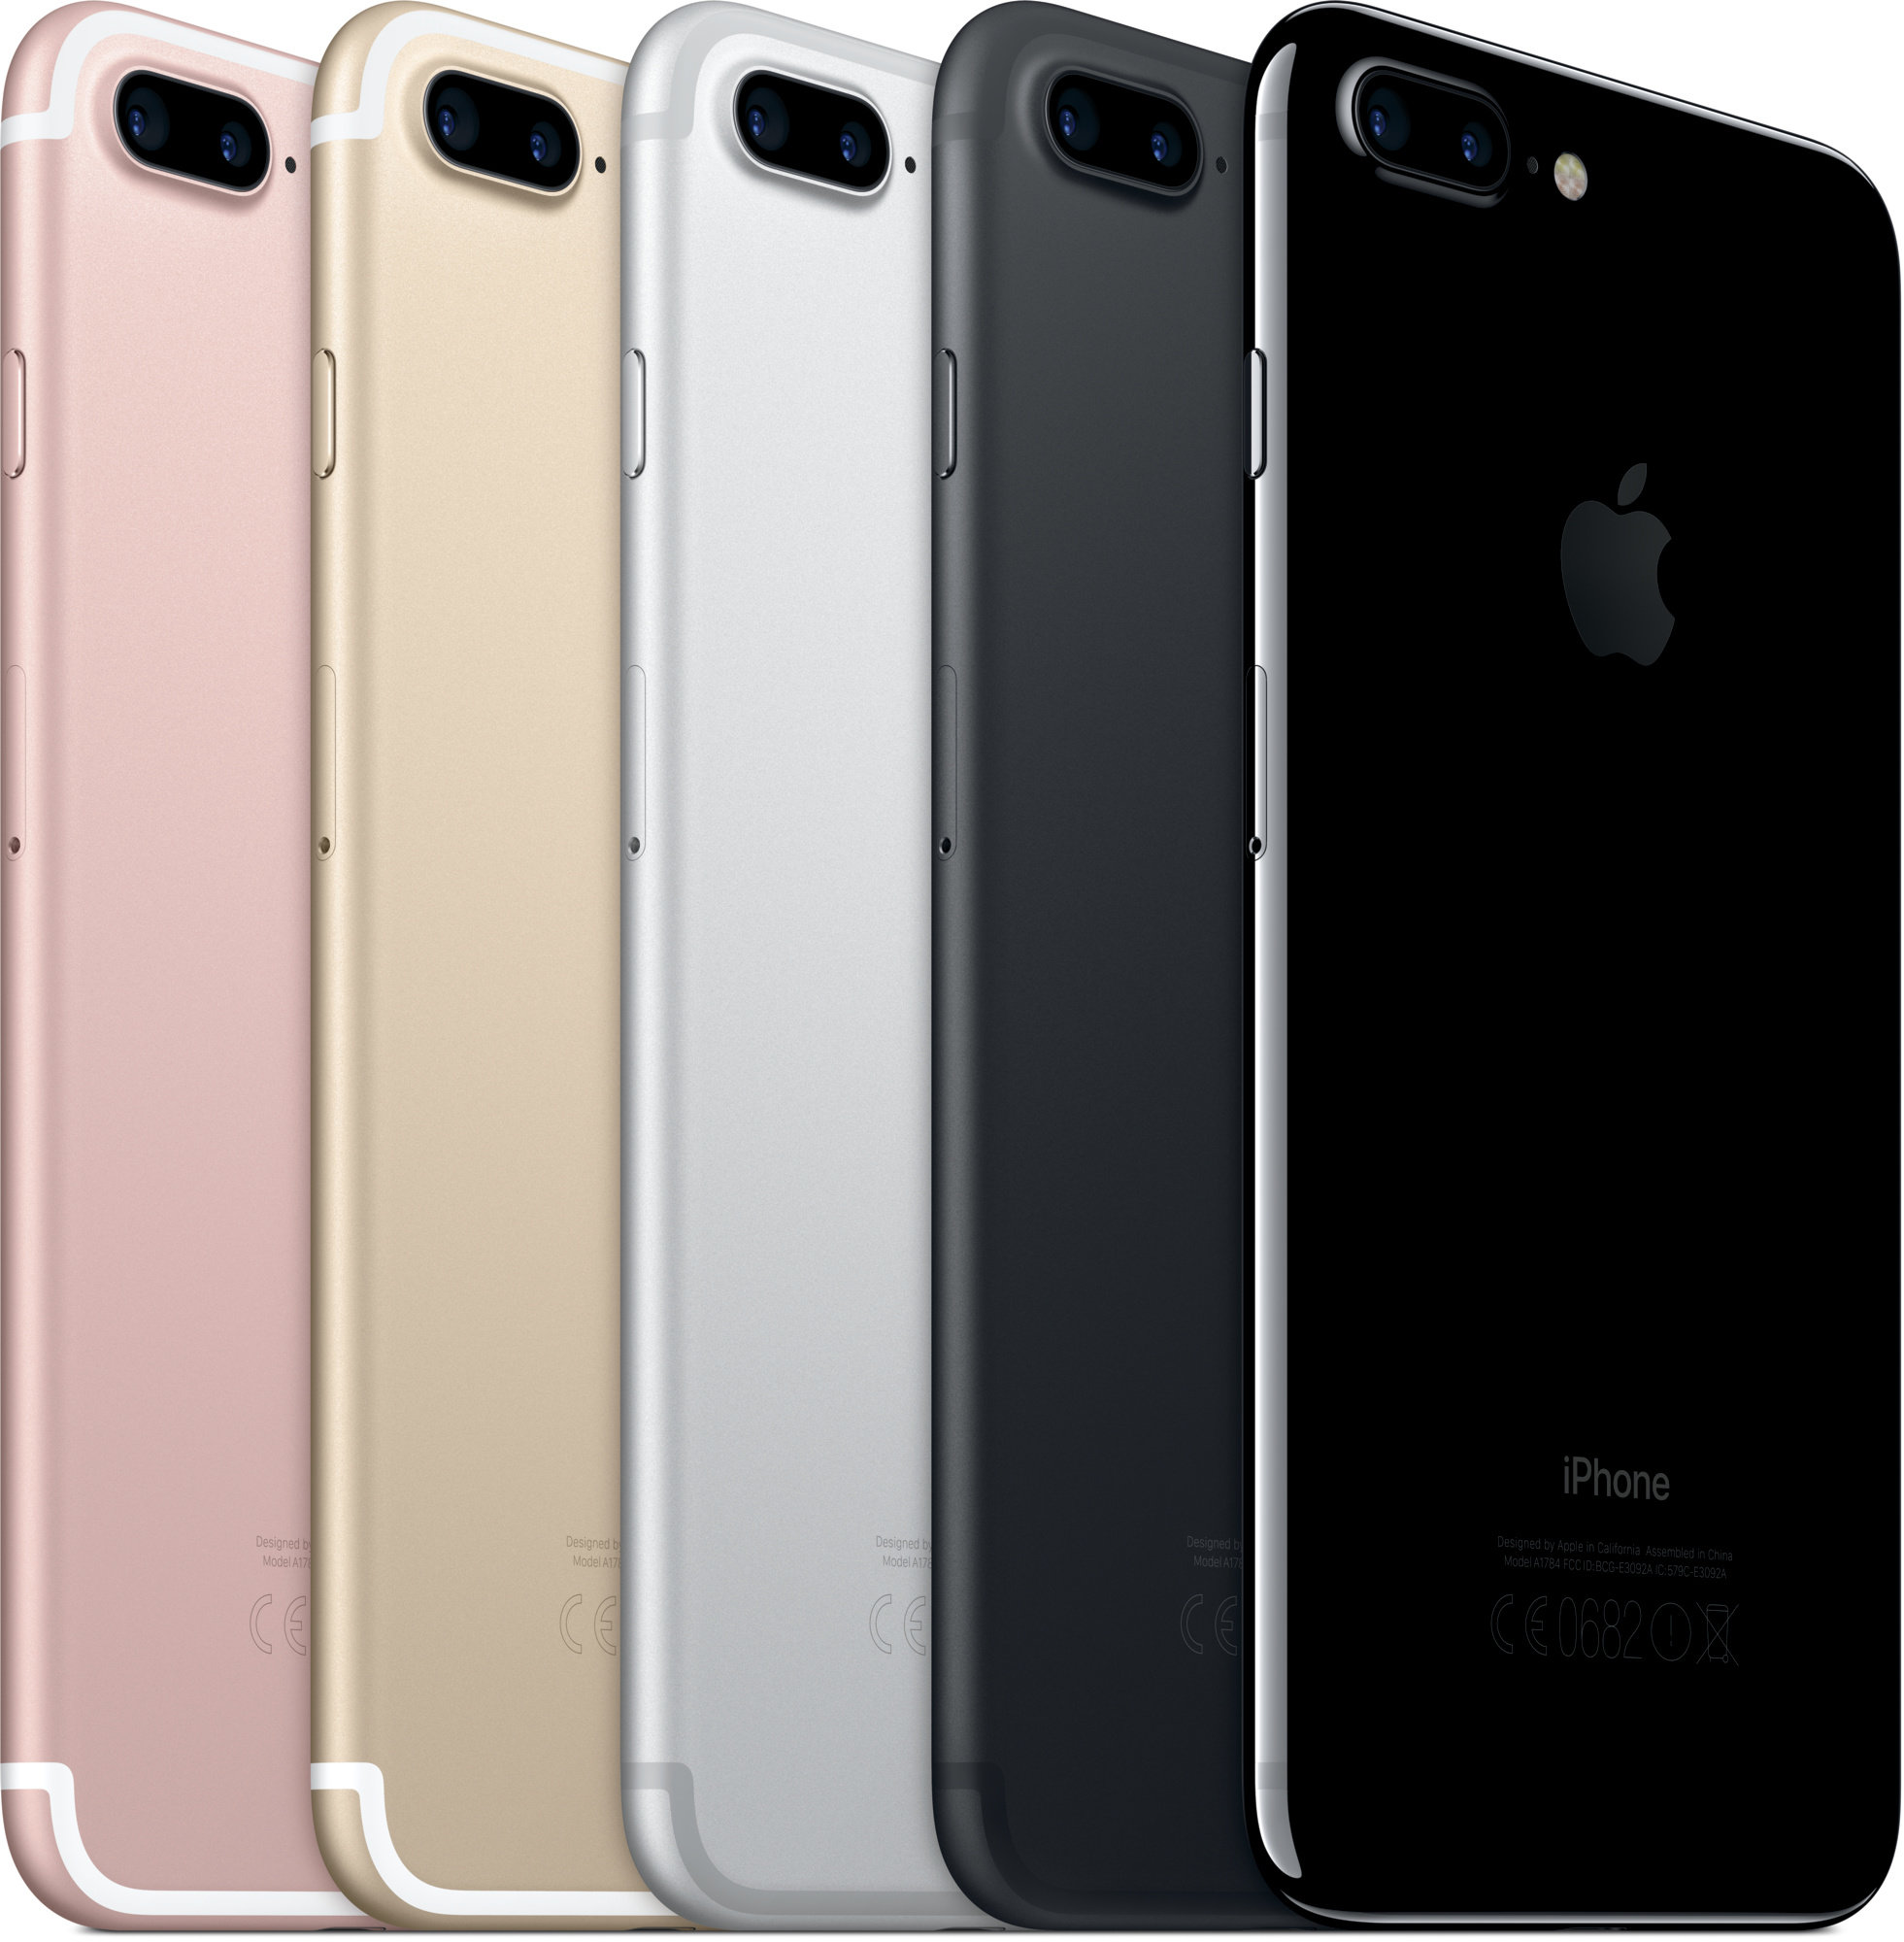 Apple iPhone 7 Plus 128GB Rose zlaté - Apple iPhone - Mobilné ... d4becfebf83